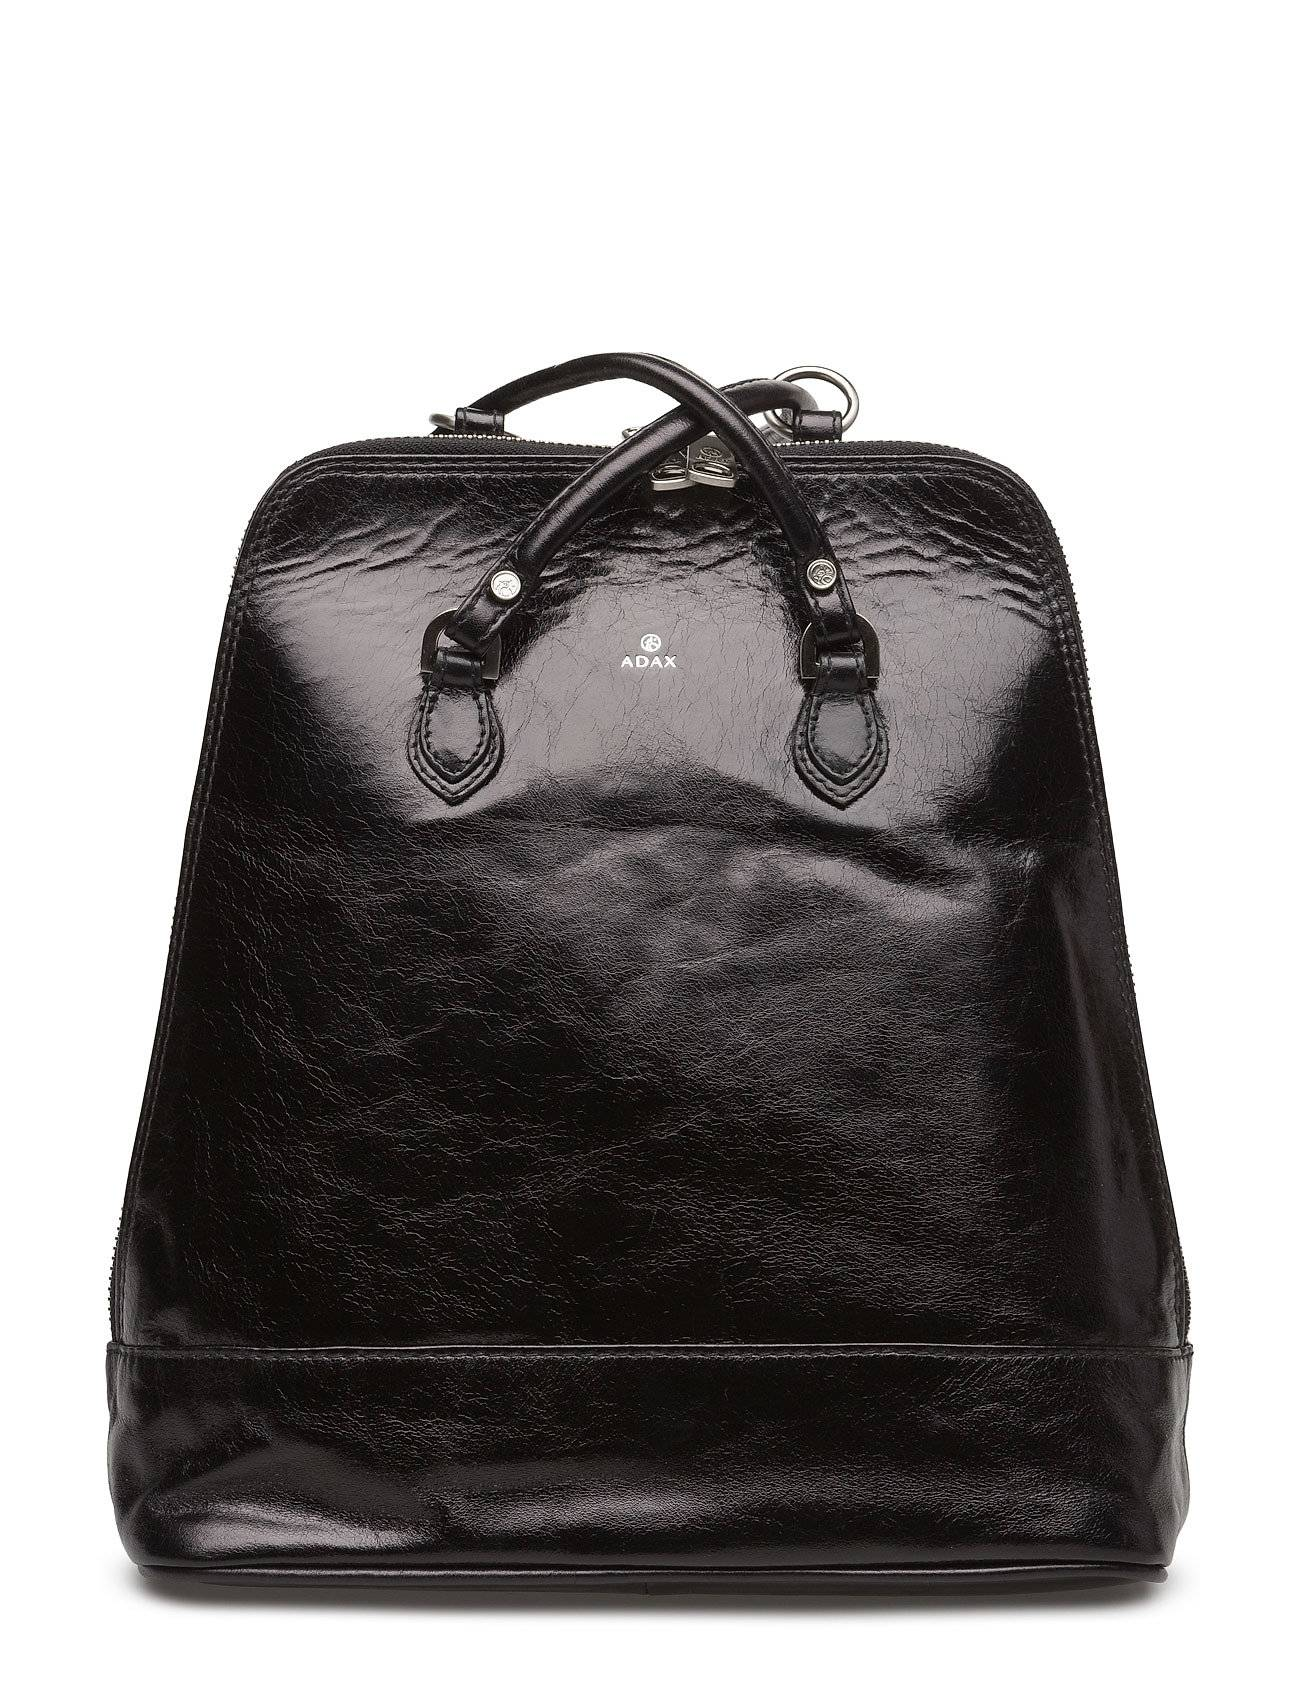 Adax Salerno Backpack Lina